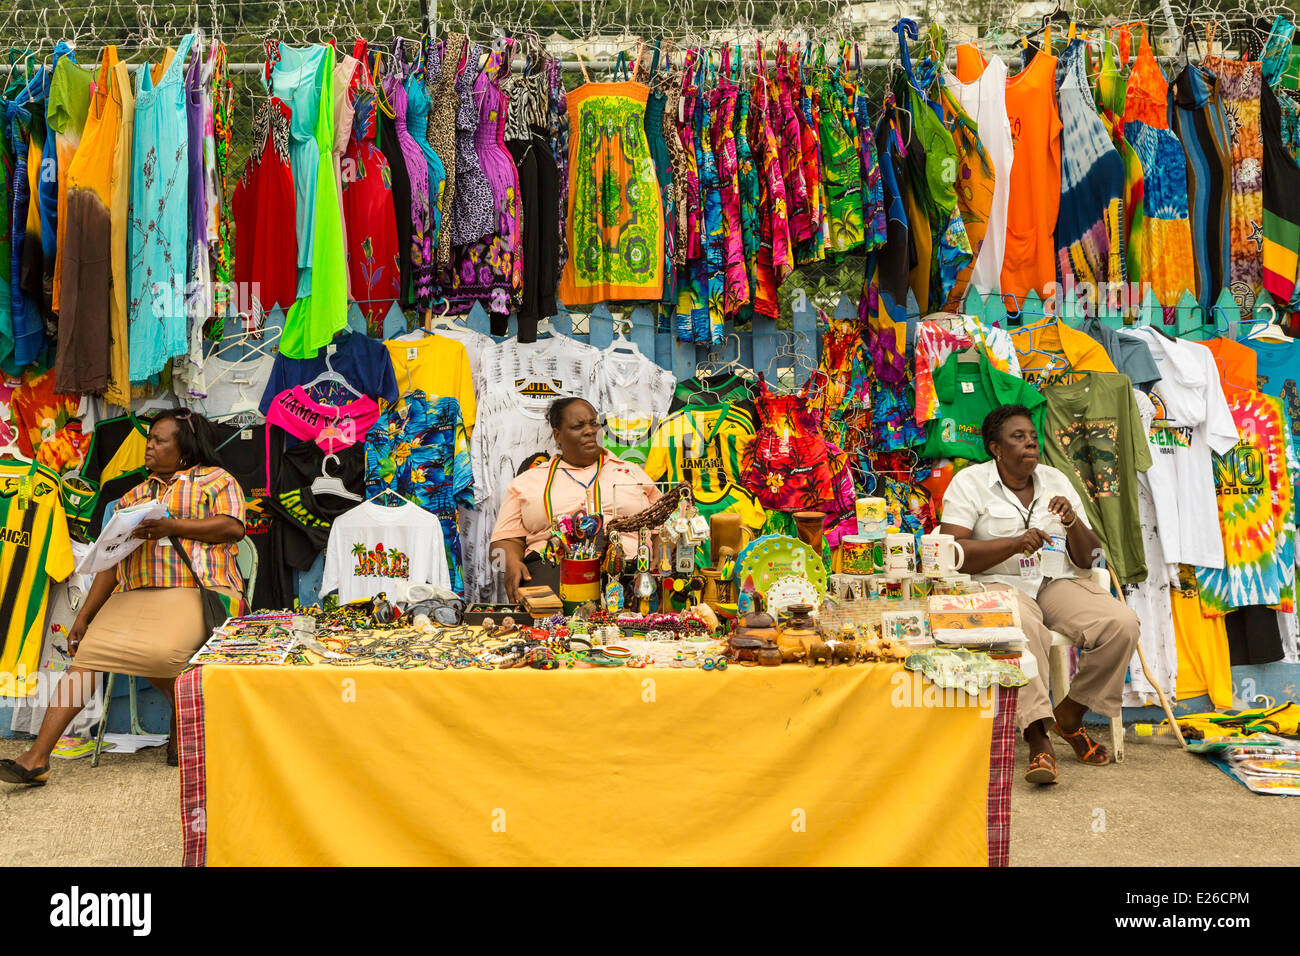 Souvenirs for sale at the port of ocho rios jamaica stock for Jamaican arts and crafts for sale